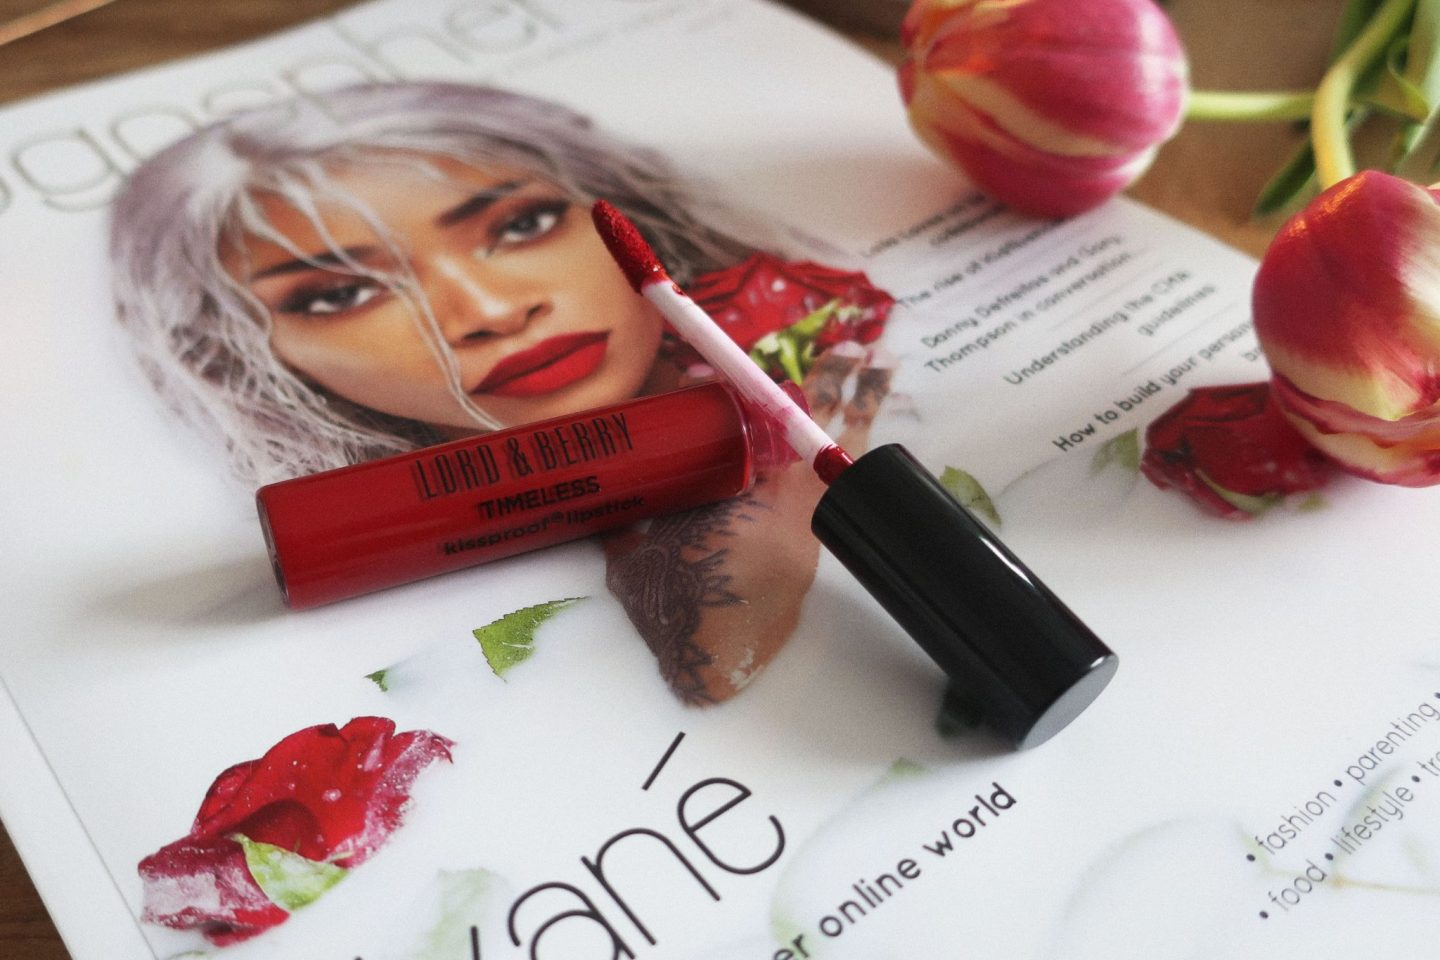 Lord & Berry Timeless Lipstick